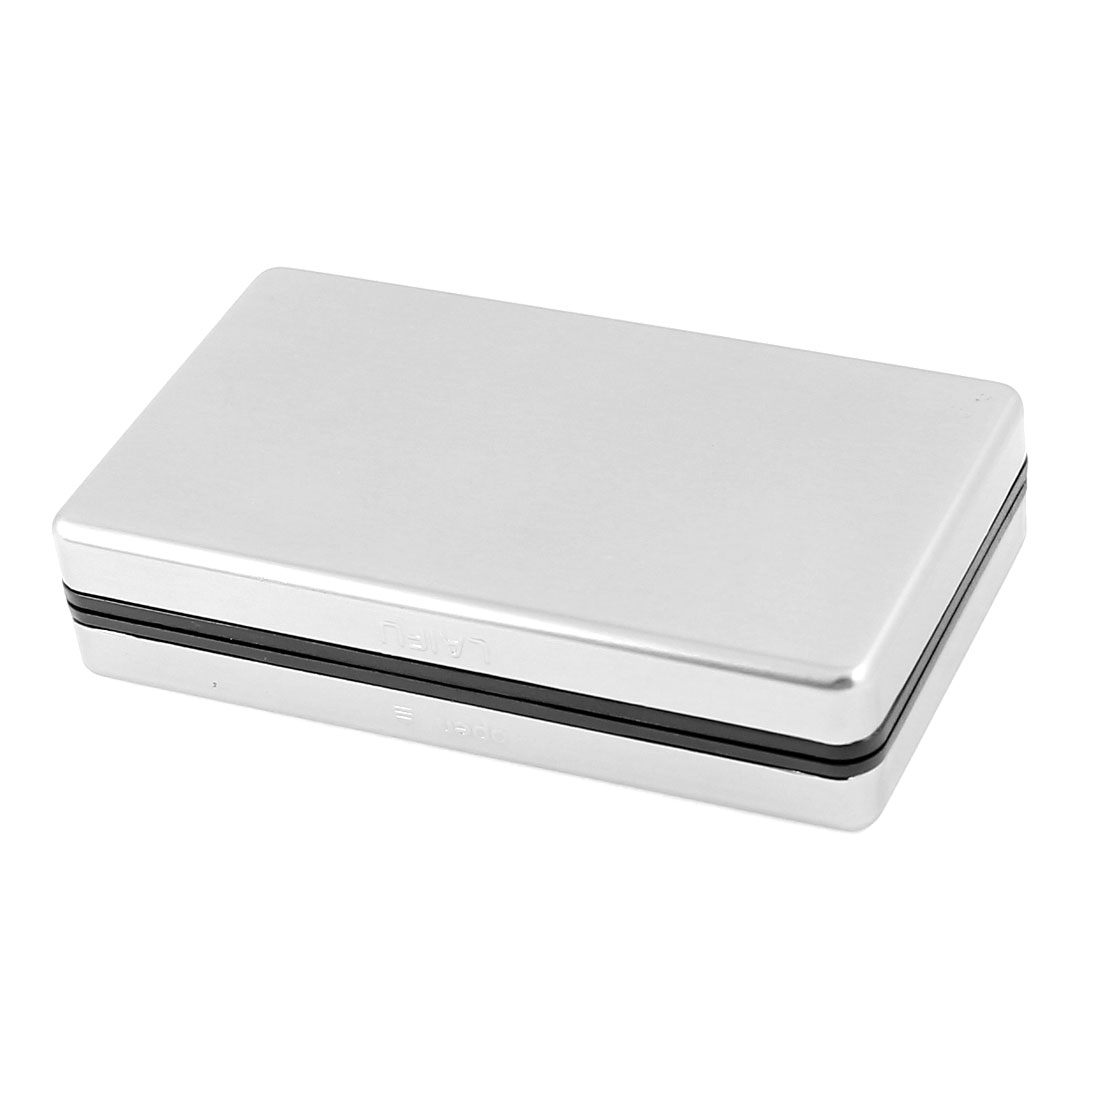 Silver Tone Aluminum Rectangular 9cm x 5cm x 2cm Full Pack 10 Pieces Cigarette Case Holder